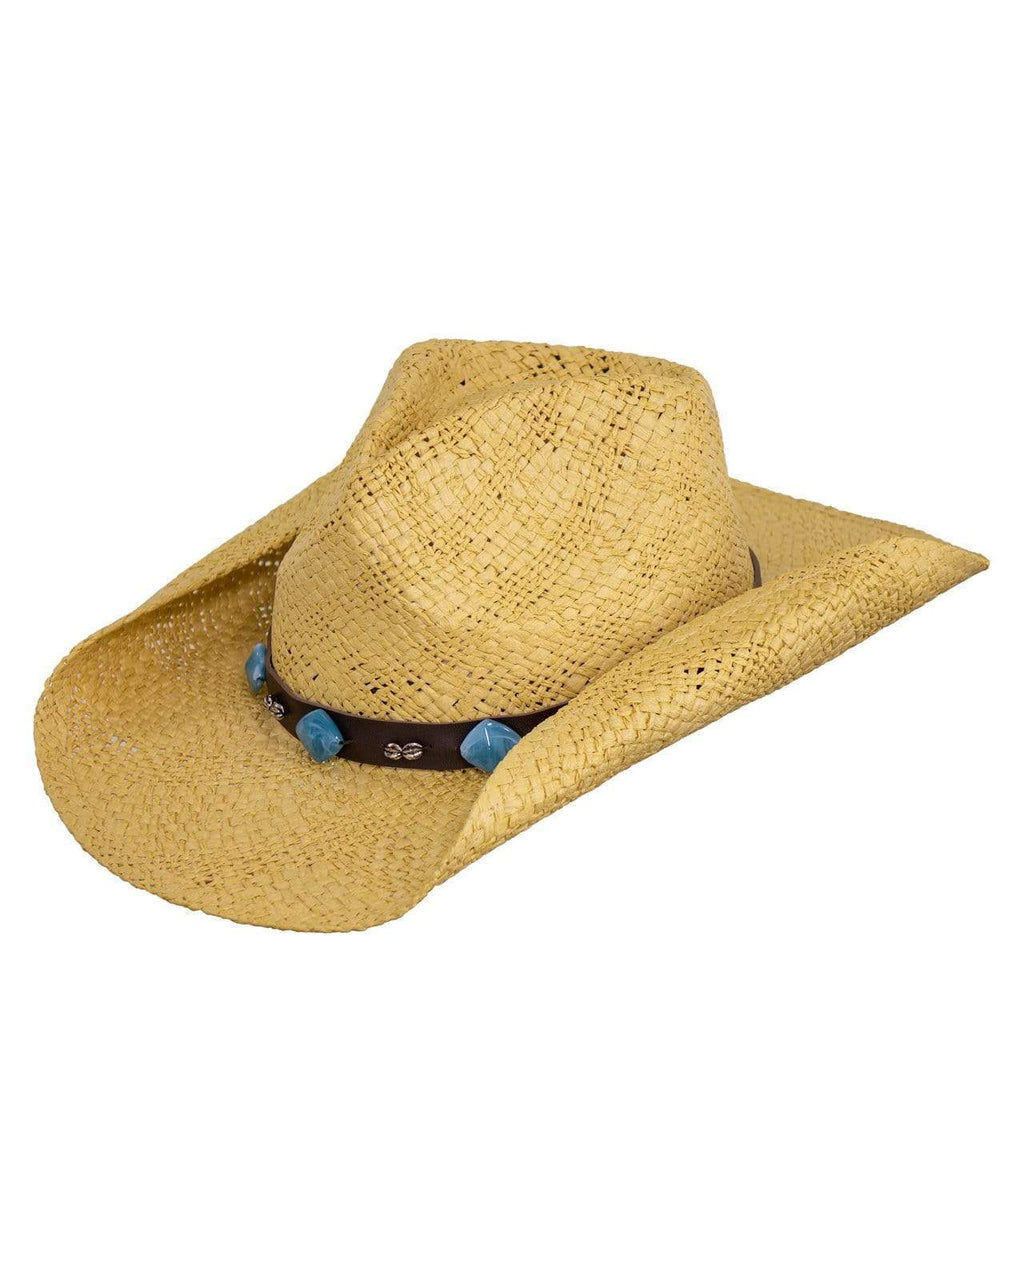 Outback Trading Straw & Palm Leaf Hats L-XL / Natural Southern Cross Natural Straw Hat